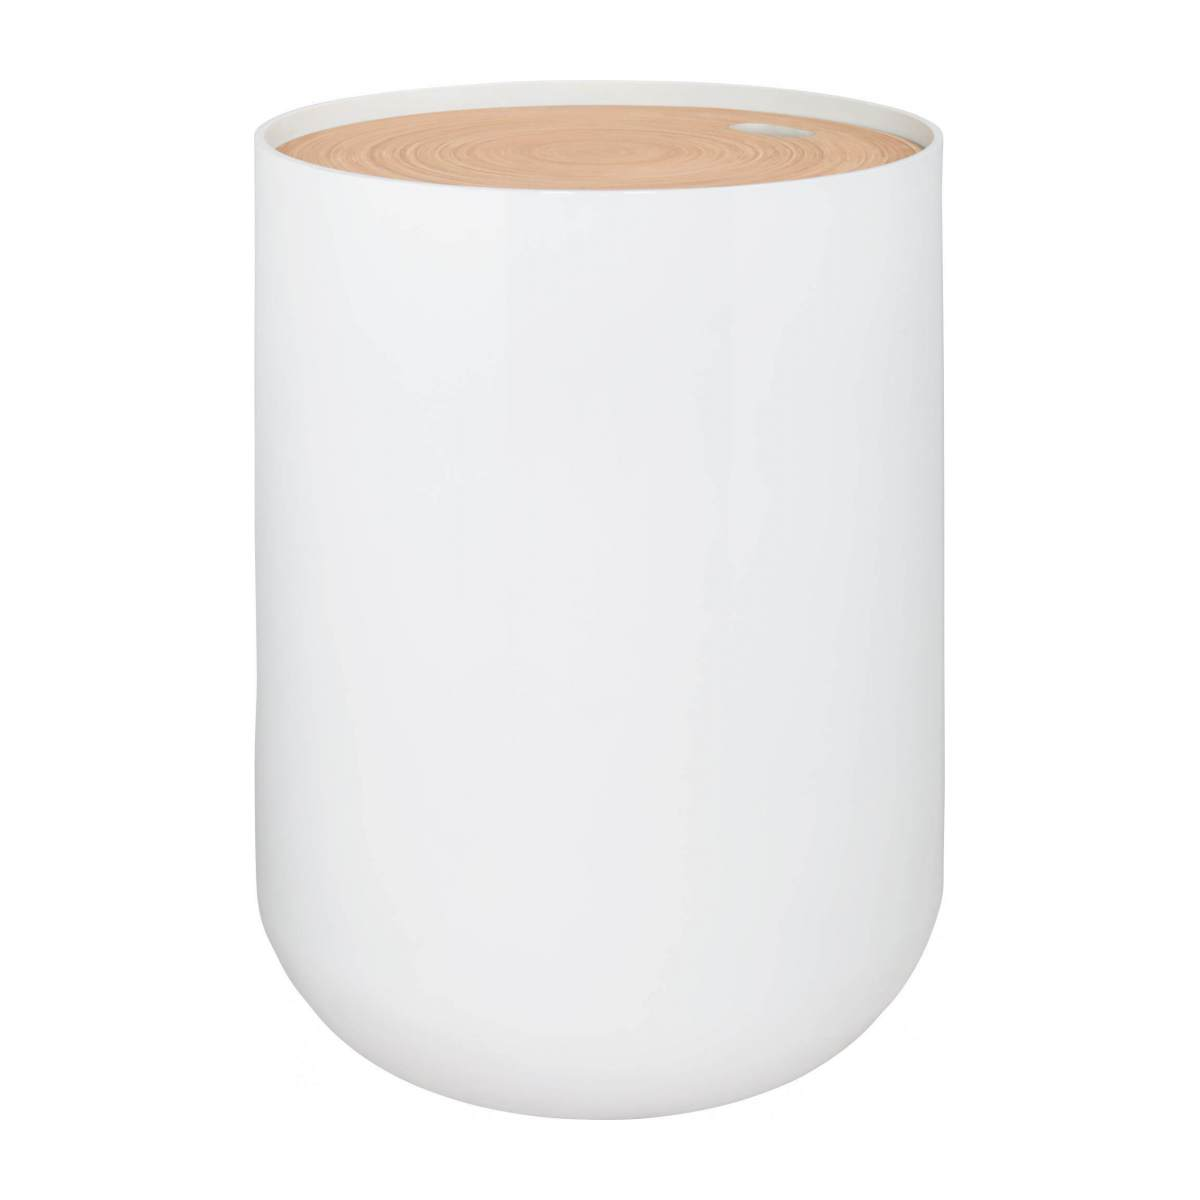 White bamboo side table 40cm n°4